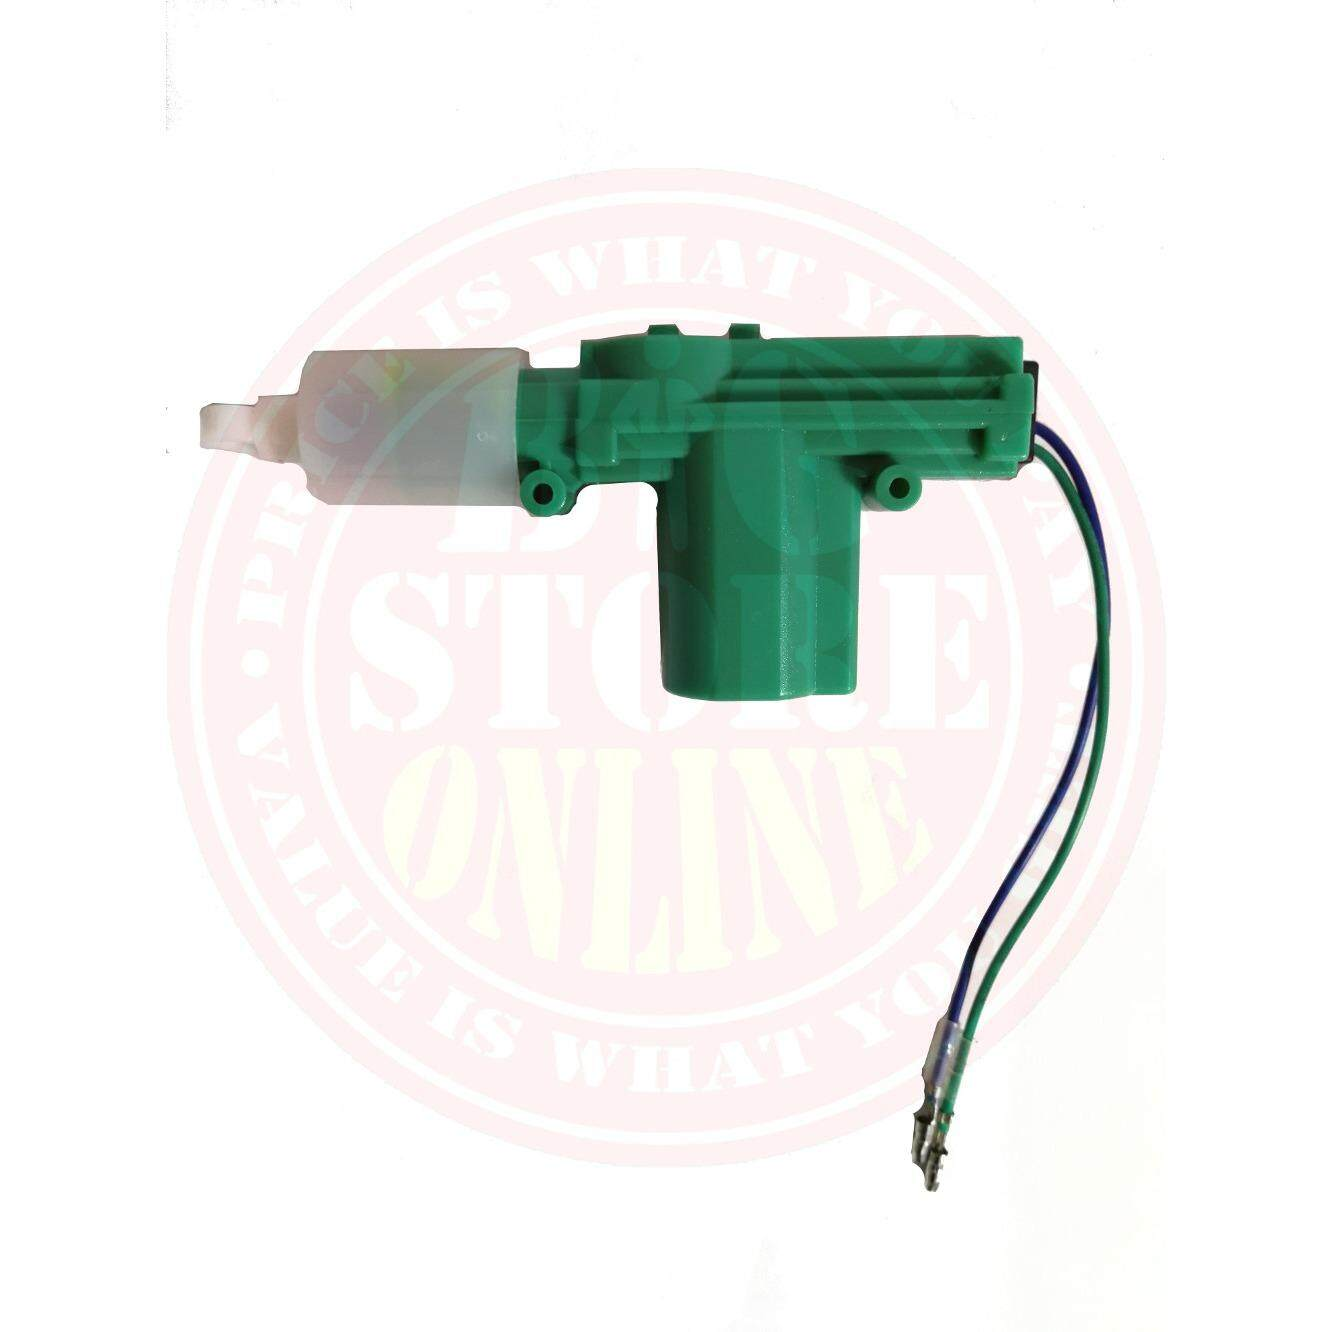 Cek Harga Car Central Locking System 2 Wire Automatic Power Door Actuator Wiring Lock Made In Malaysia